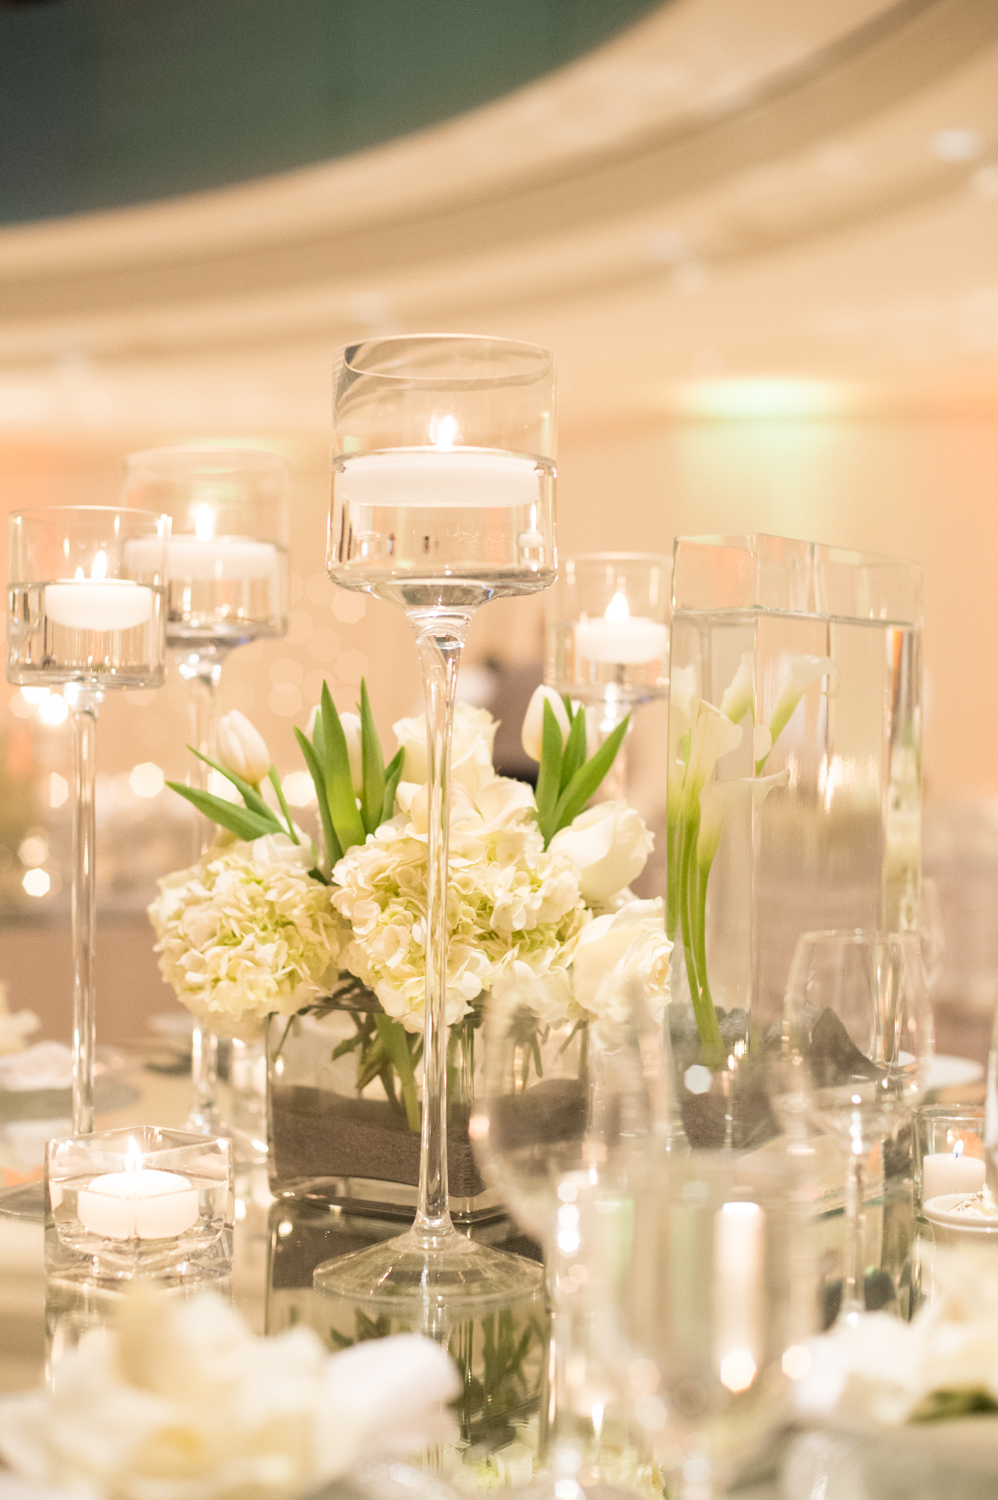 8 Ways To Include Clear Or Glass Details Into Your Wedding